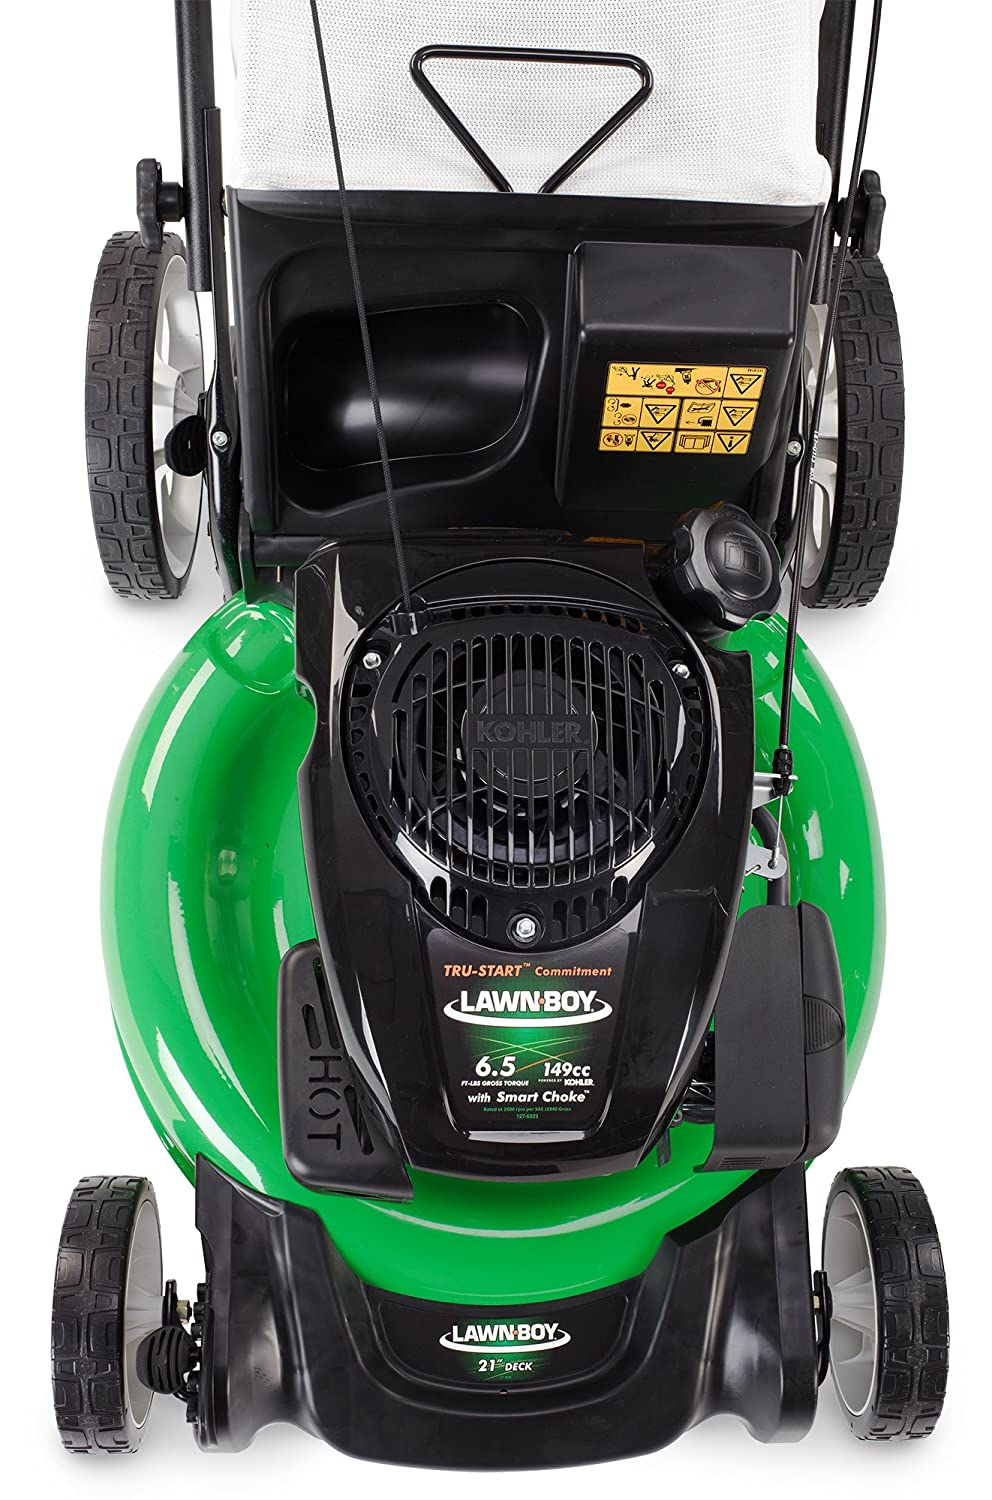 Lawn-Boy 10730 Kohler XT6 OHV High Wheel Push Gas Lawn Mower, 21-Inch:  Amazon.ca: Patio, Lawn & Garden